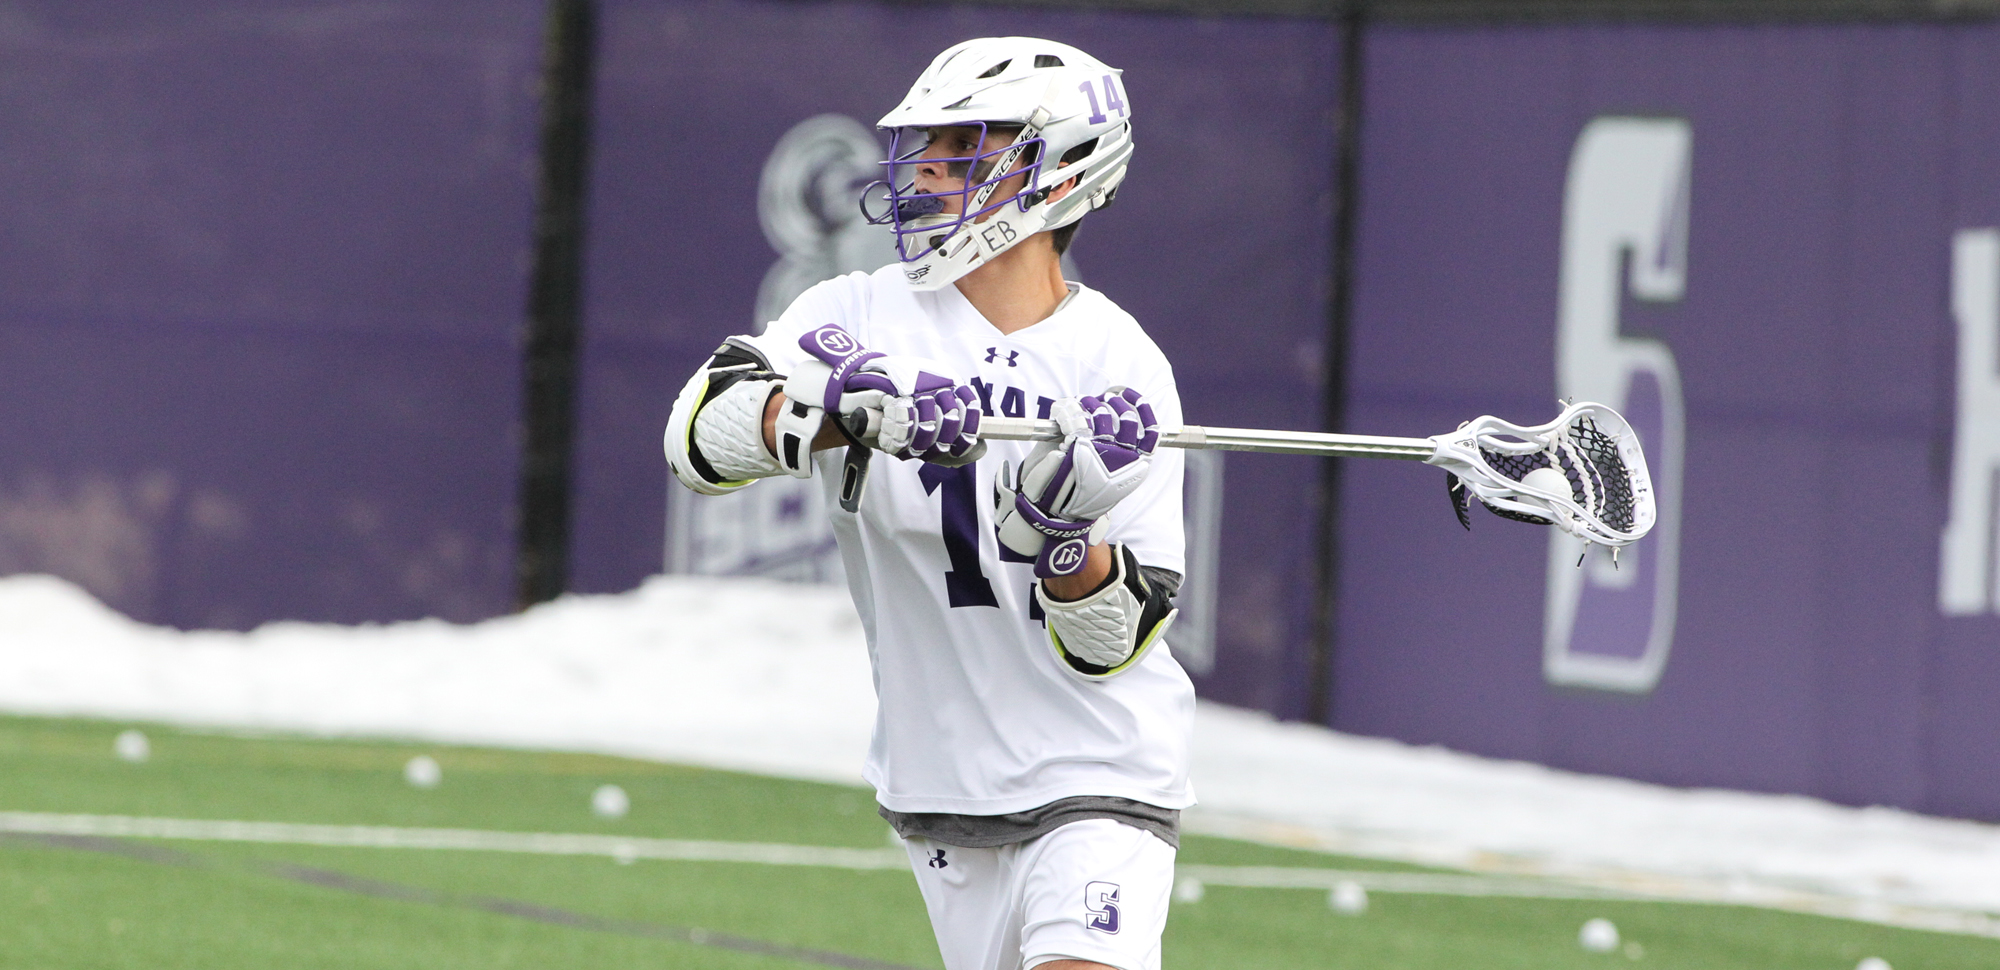 Senior Tim Dolan had a goal and an assist on Wednesday night to surpass the 100-point milestone as Scranton defeated Drew at Weiss Field. © Photo by Timothy R. Dougherty / doubleeaglephotography.com